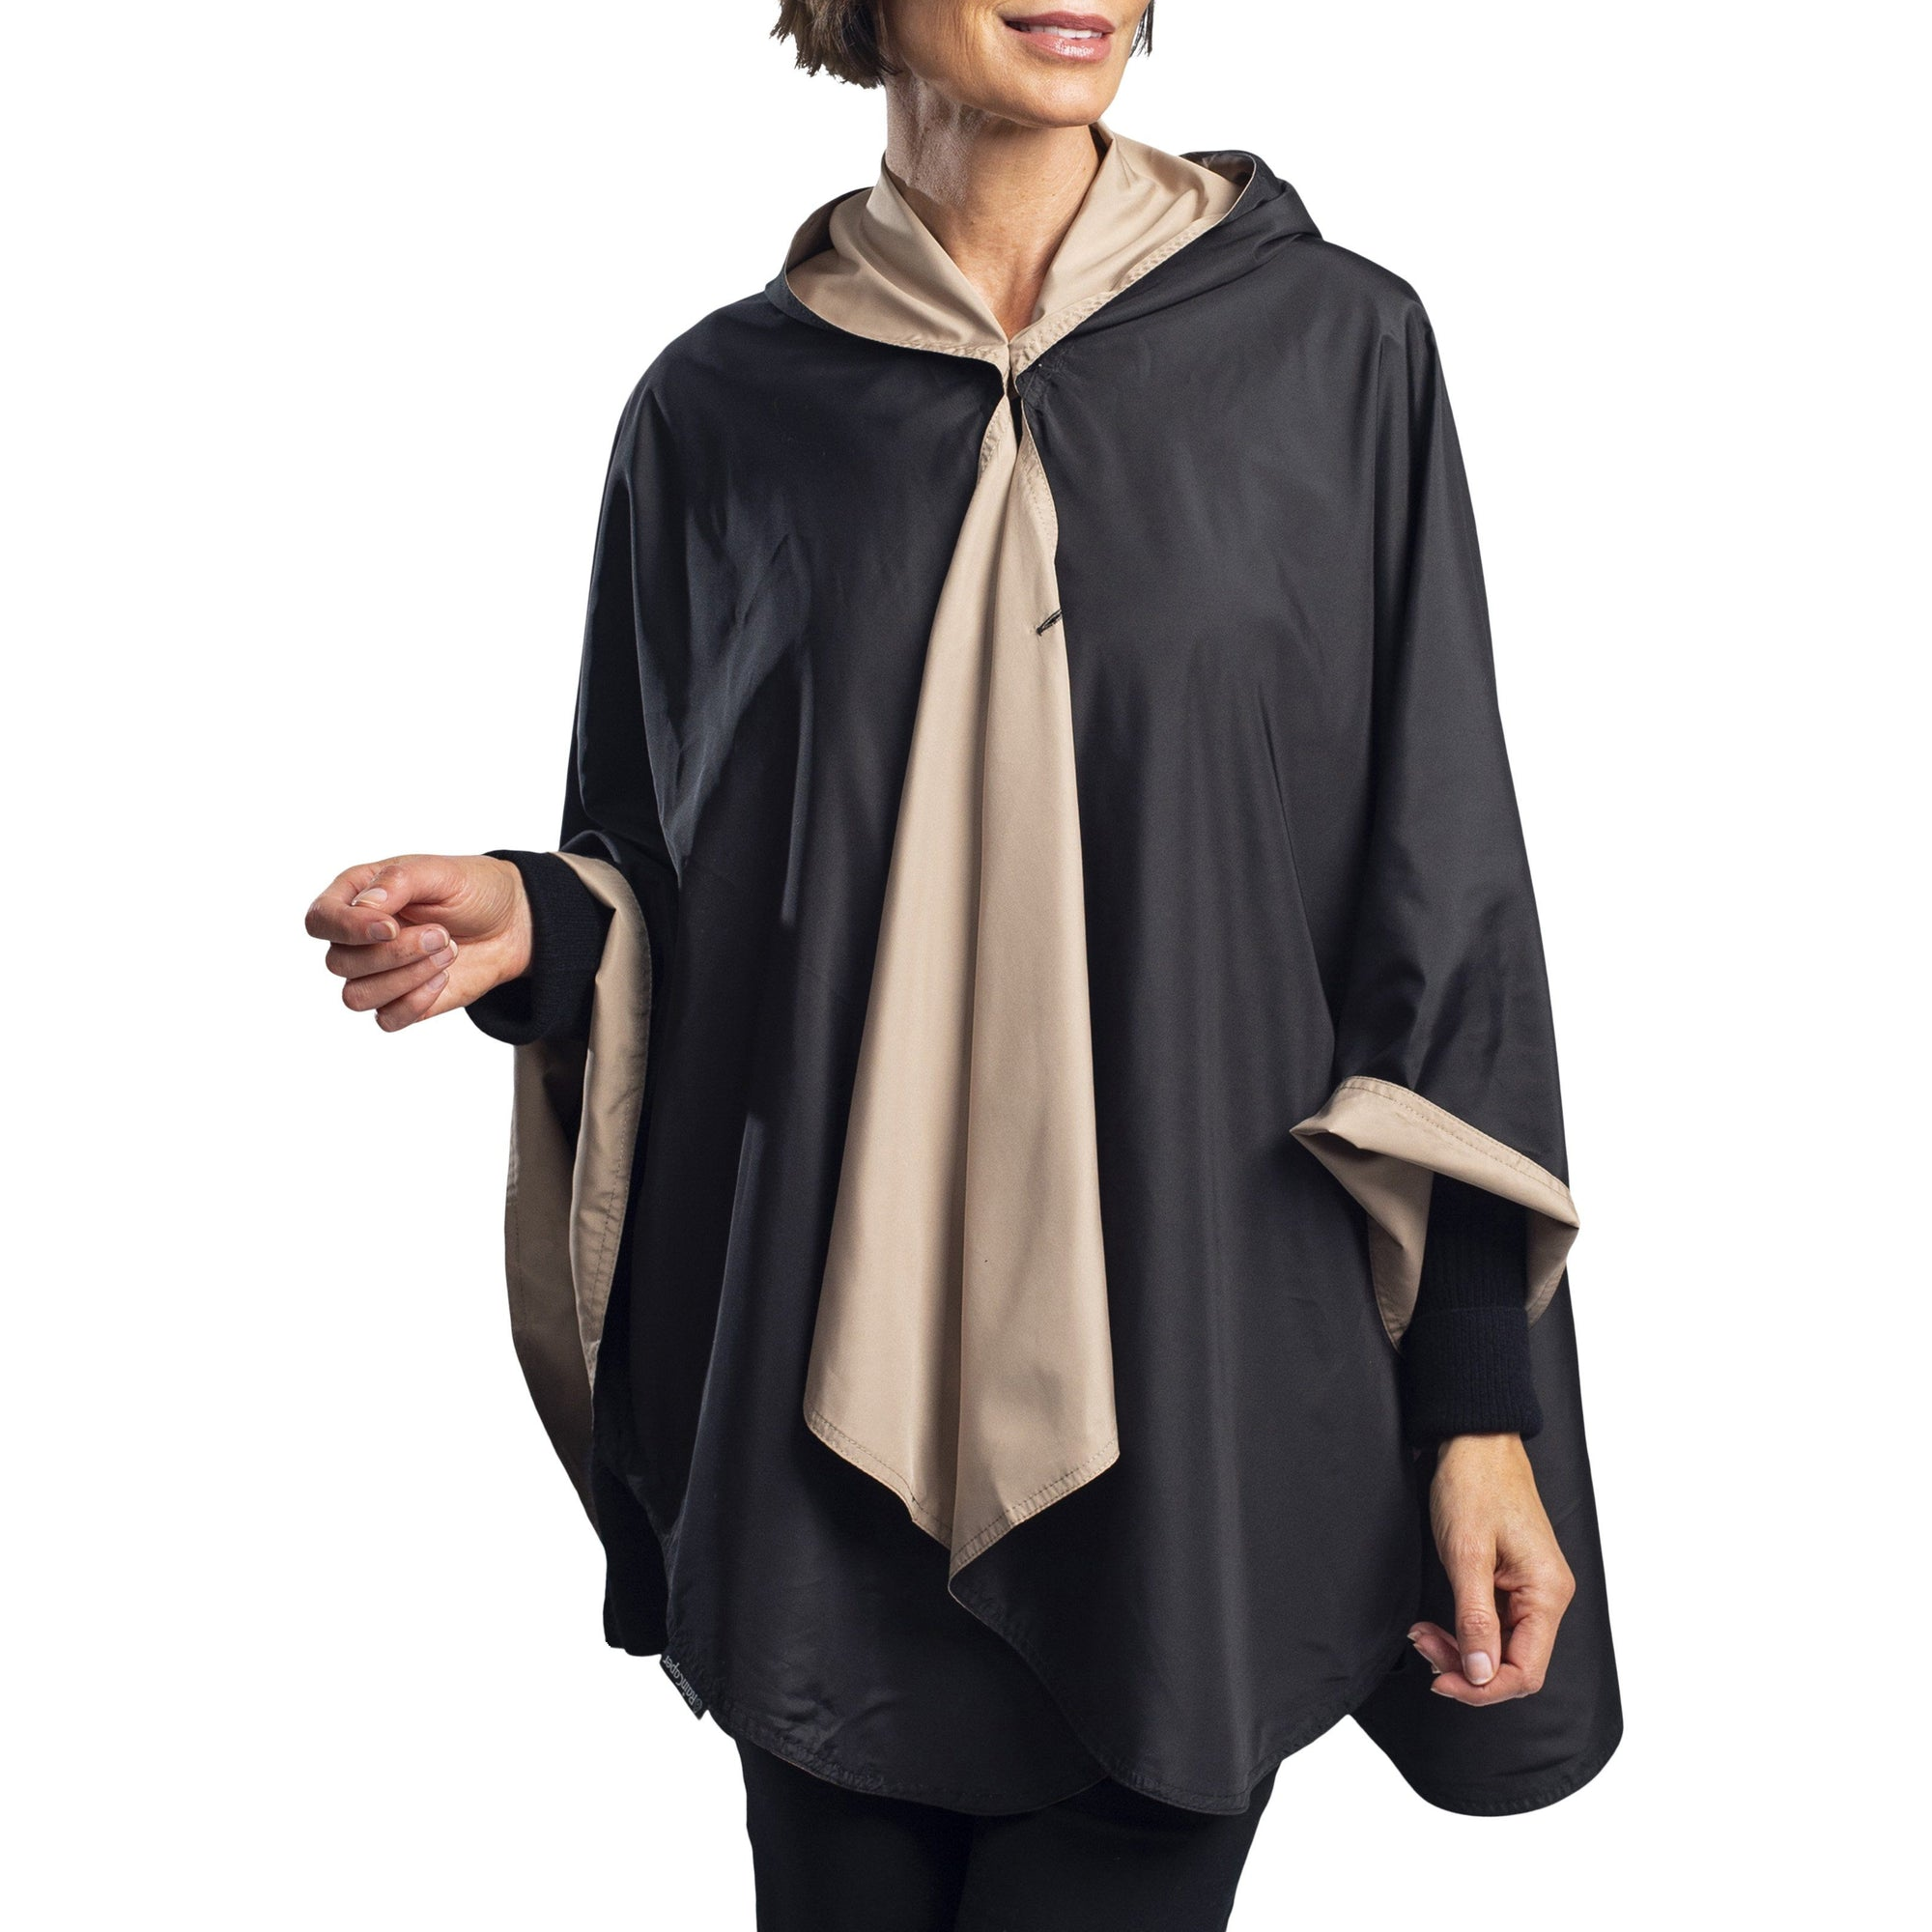 RainCaper Black & Camel Reversible Travel Cape & Womens Rain Coat